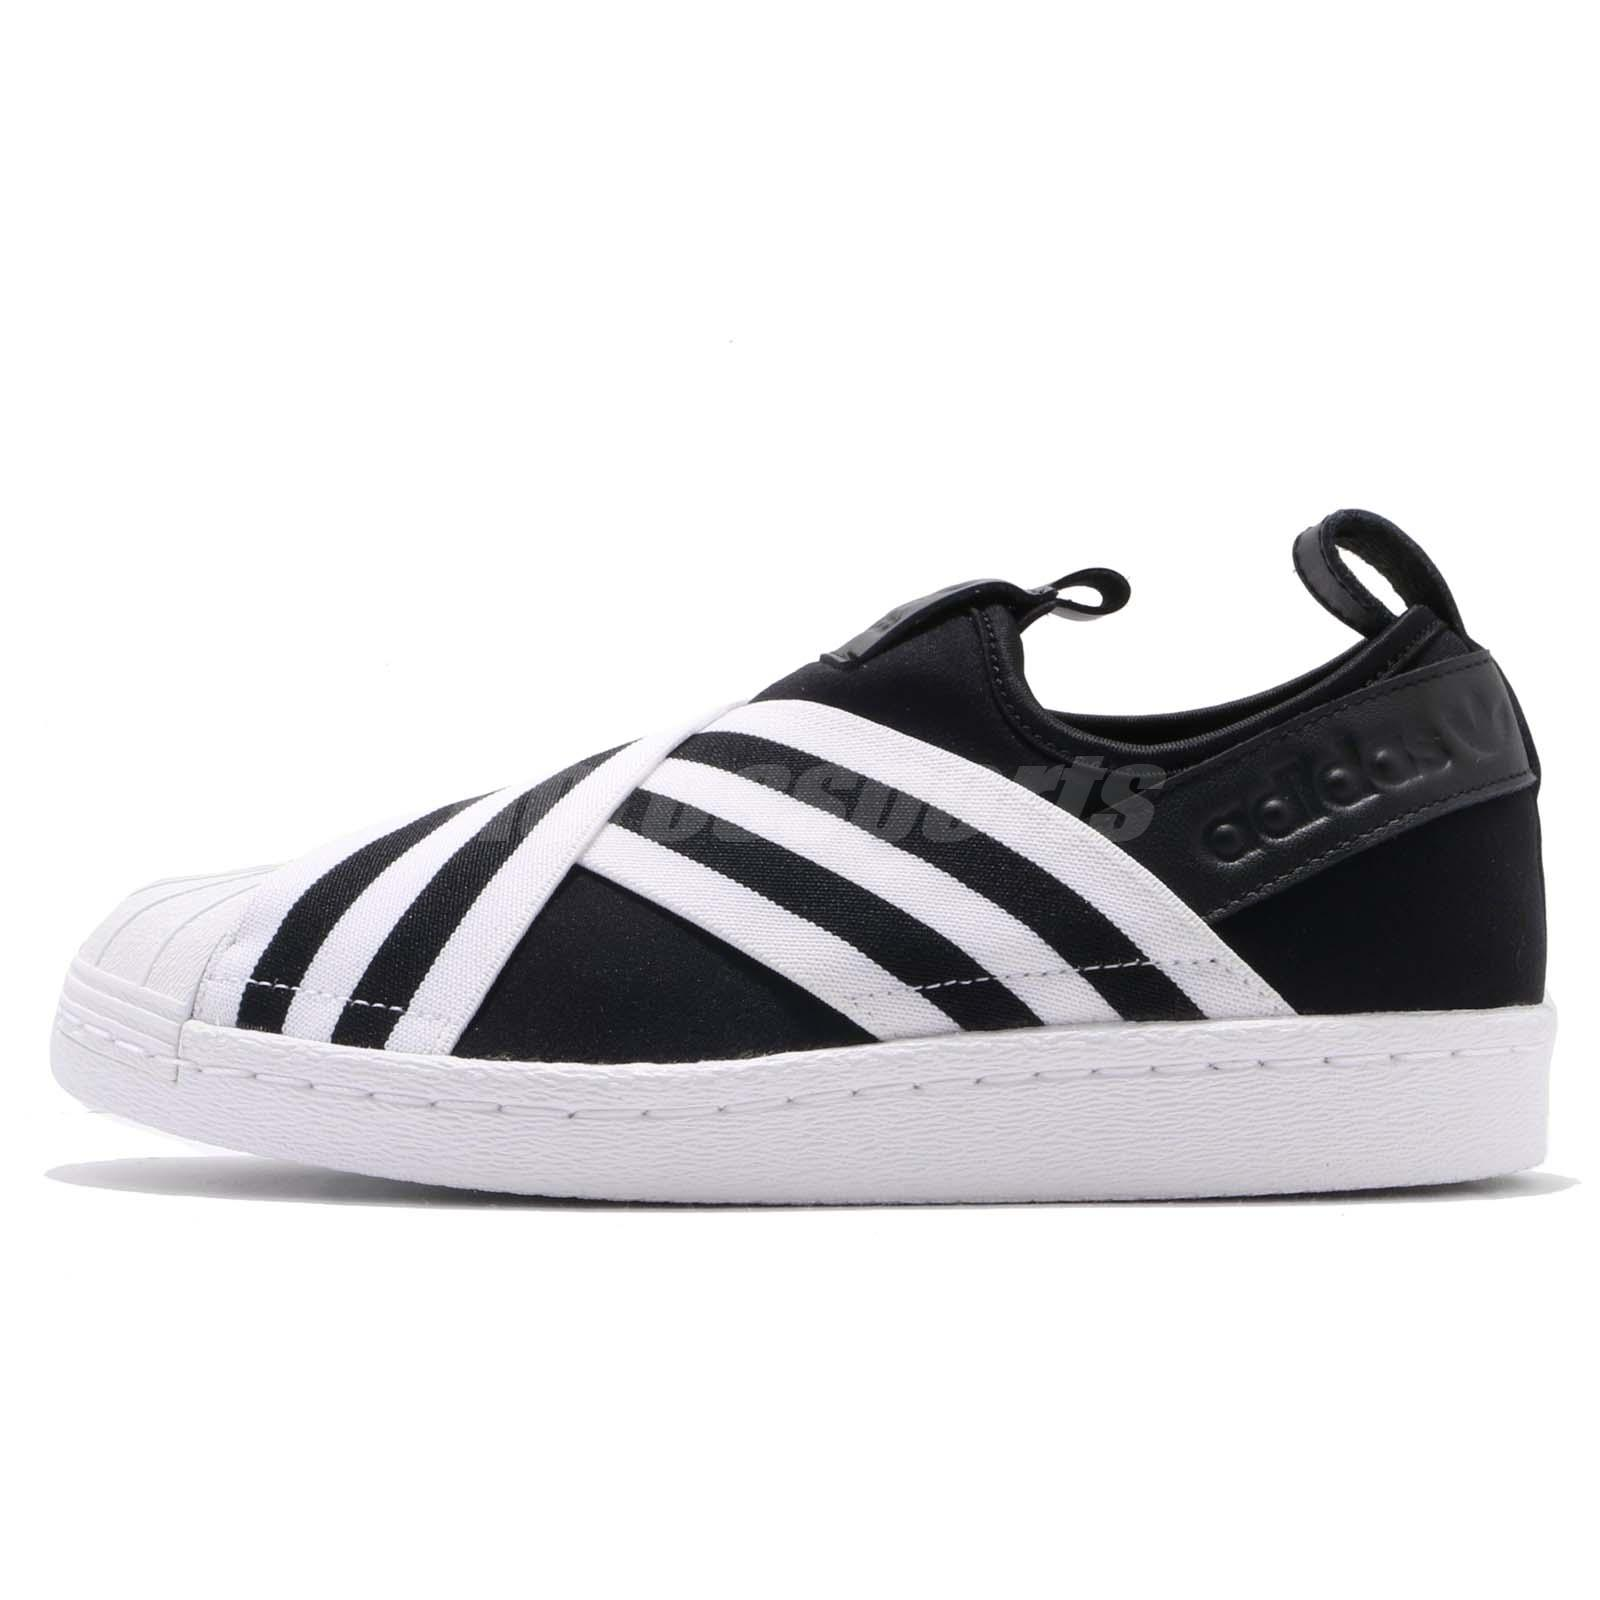 3beae46b40 adidas Originals Superstar Slip On W Core Black Cloud White Women Shoes  AC8582